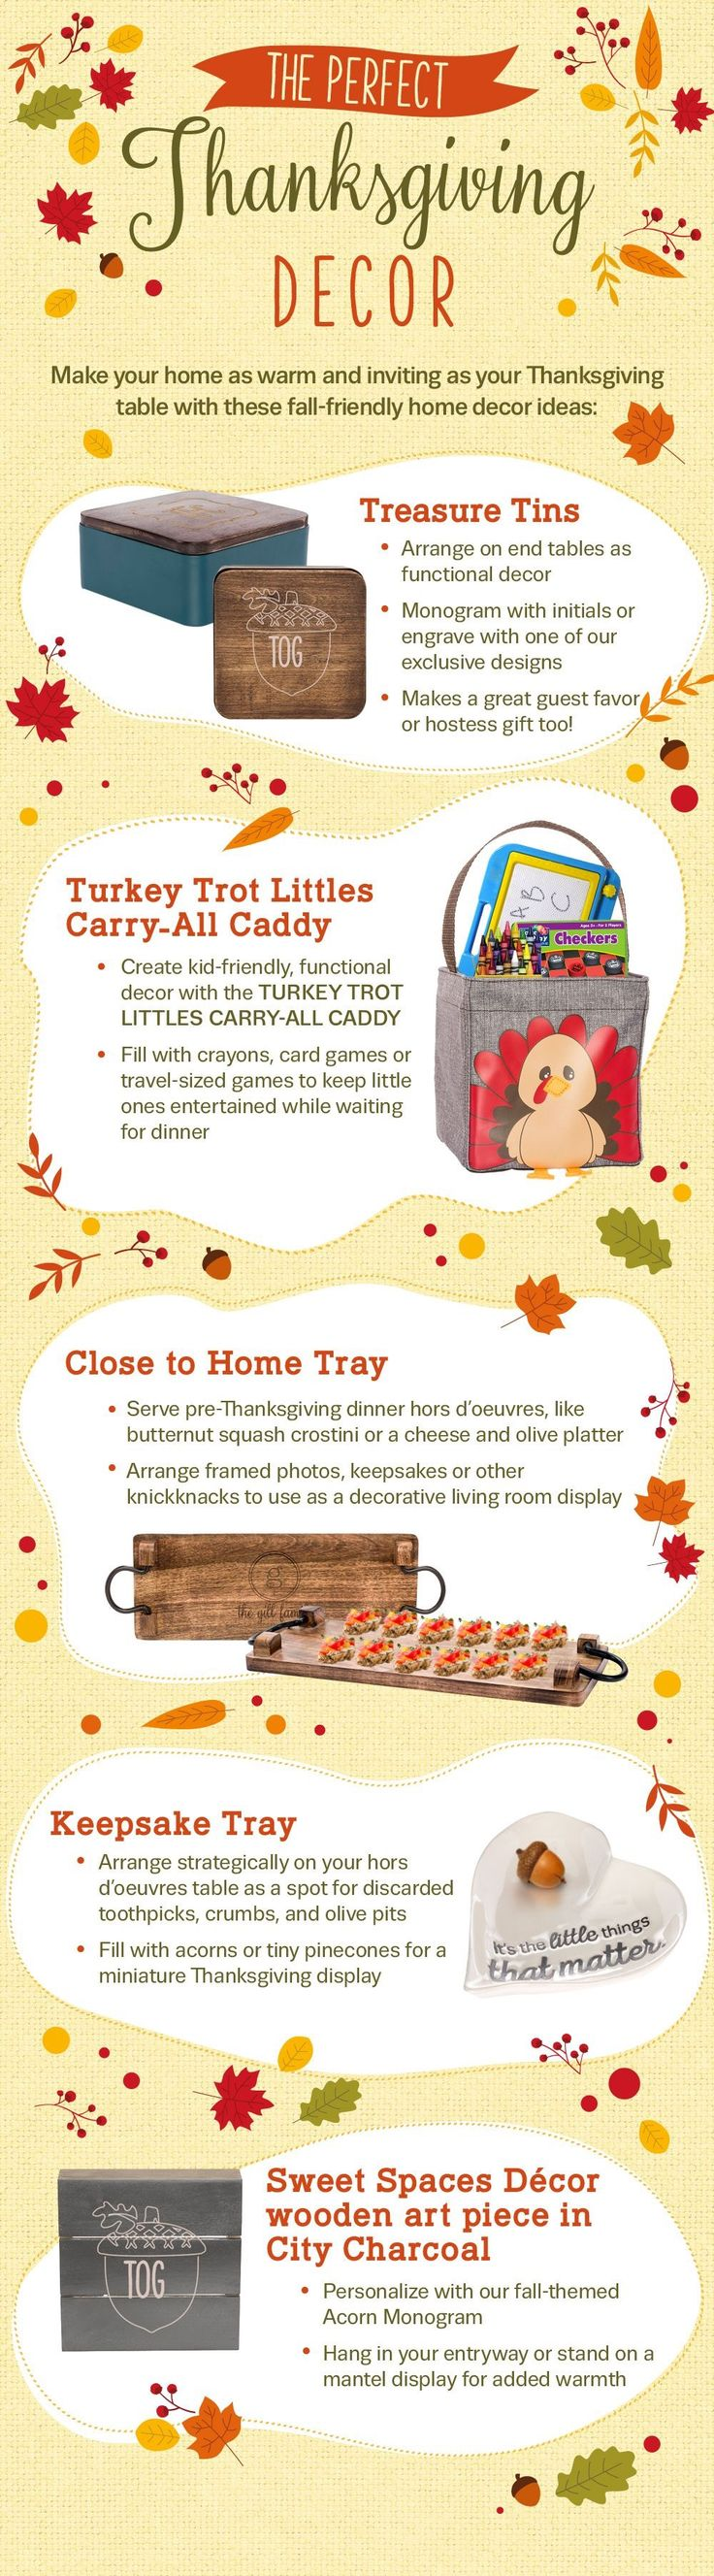 SHOP AT: https://www.mythirtyone.com/vgoodwin/info/home Check out these Fall items